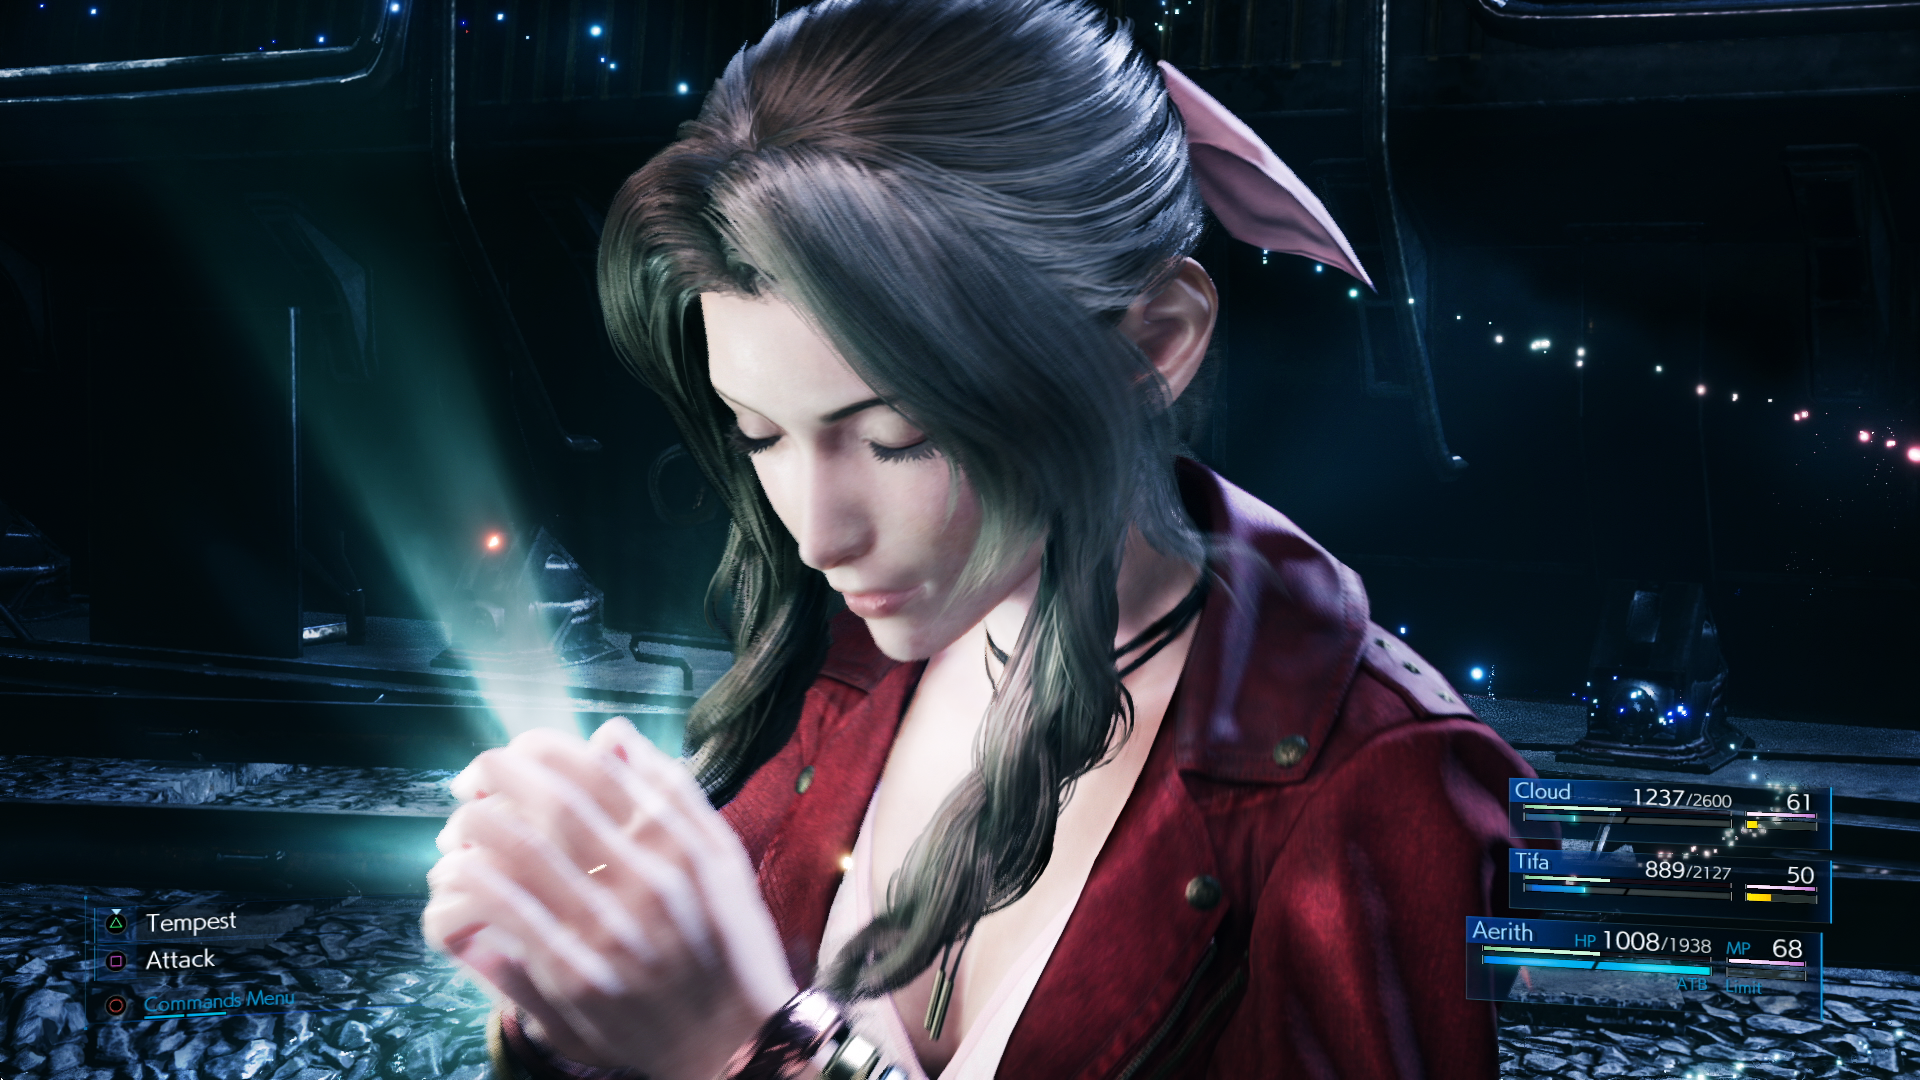 Aerith Is My Favourite Party Member In Final Fantasy VII Remake